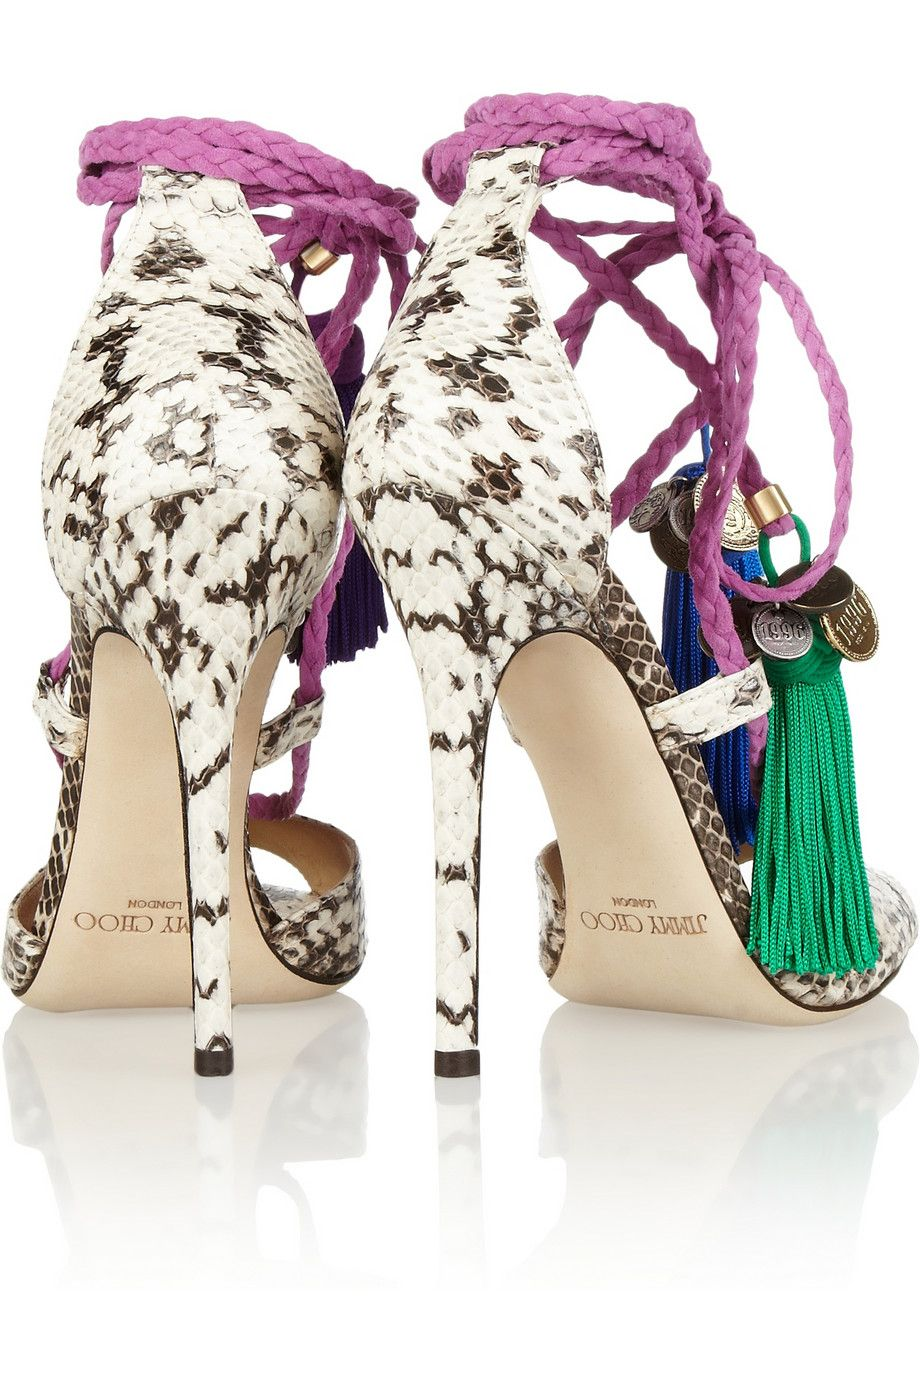 ee18893fb3a Jimmy choo dream rope tie shoes and more shoes sandals jpg 920x1380 Jimmy  choo dream